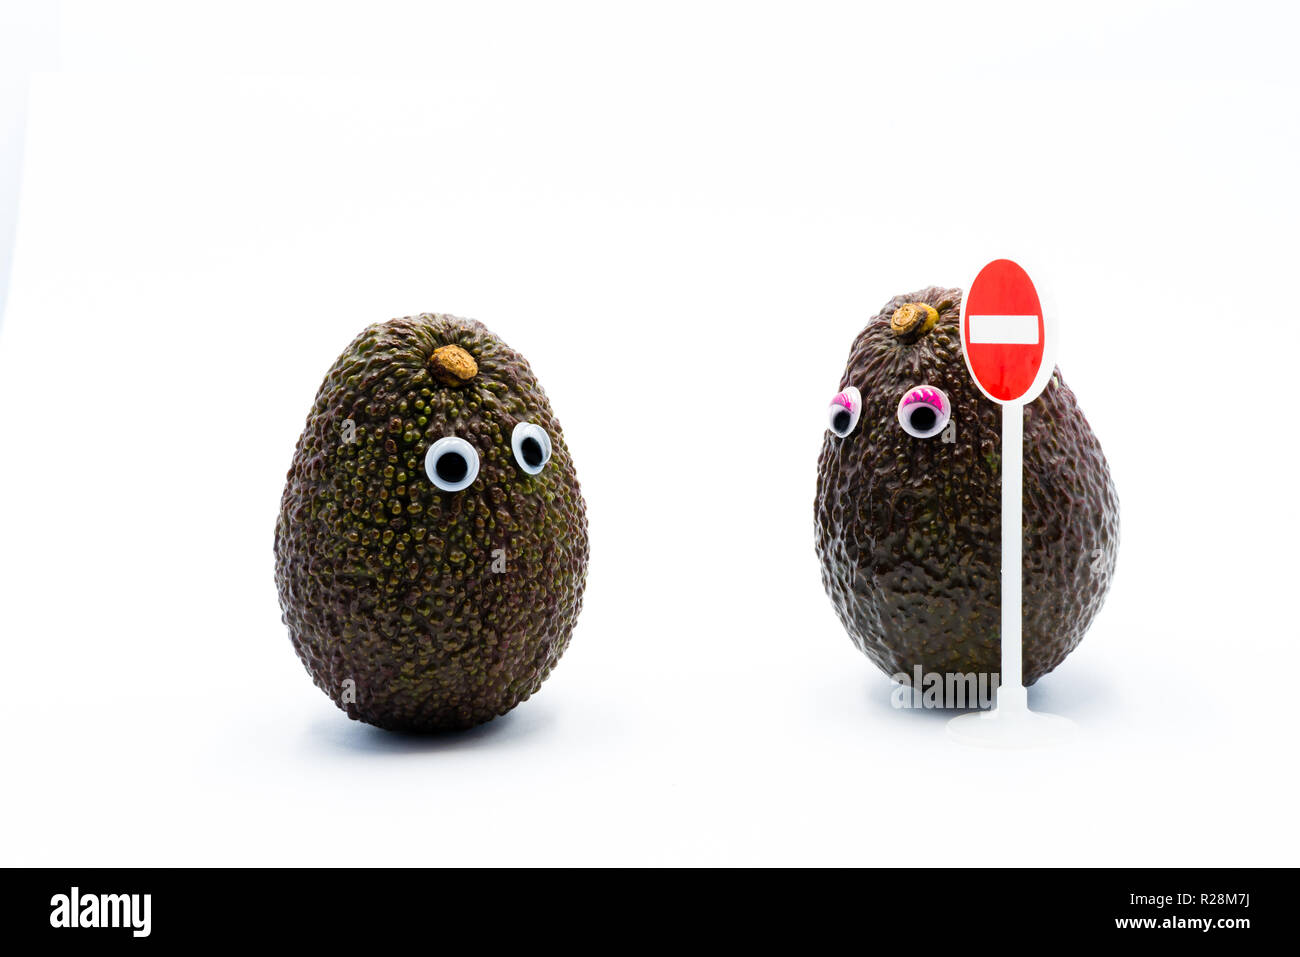 Romantic avocados couple with googly eyes as man and woman, traffic no entry sign, funny food concept for creative projects. - Stock Image